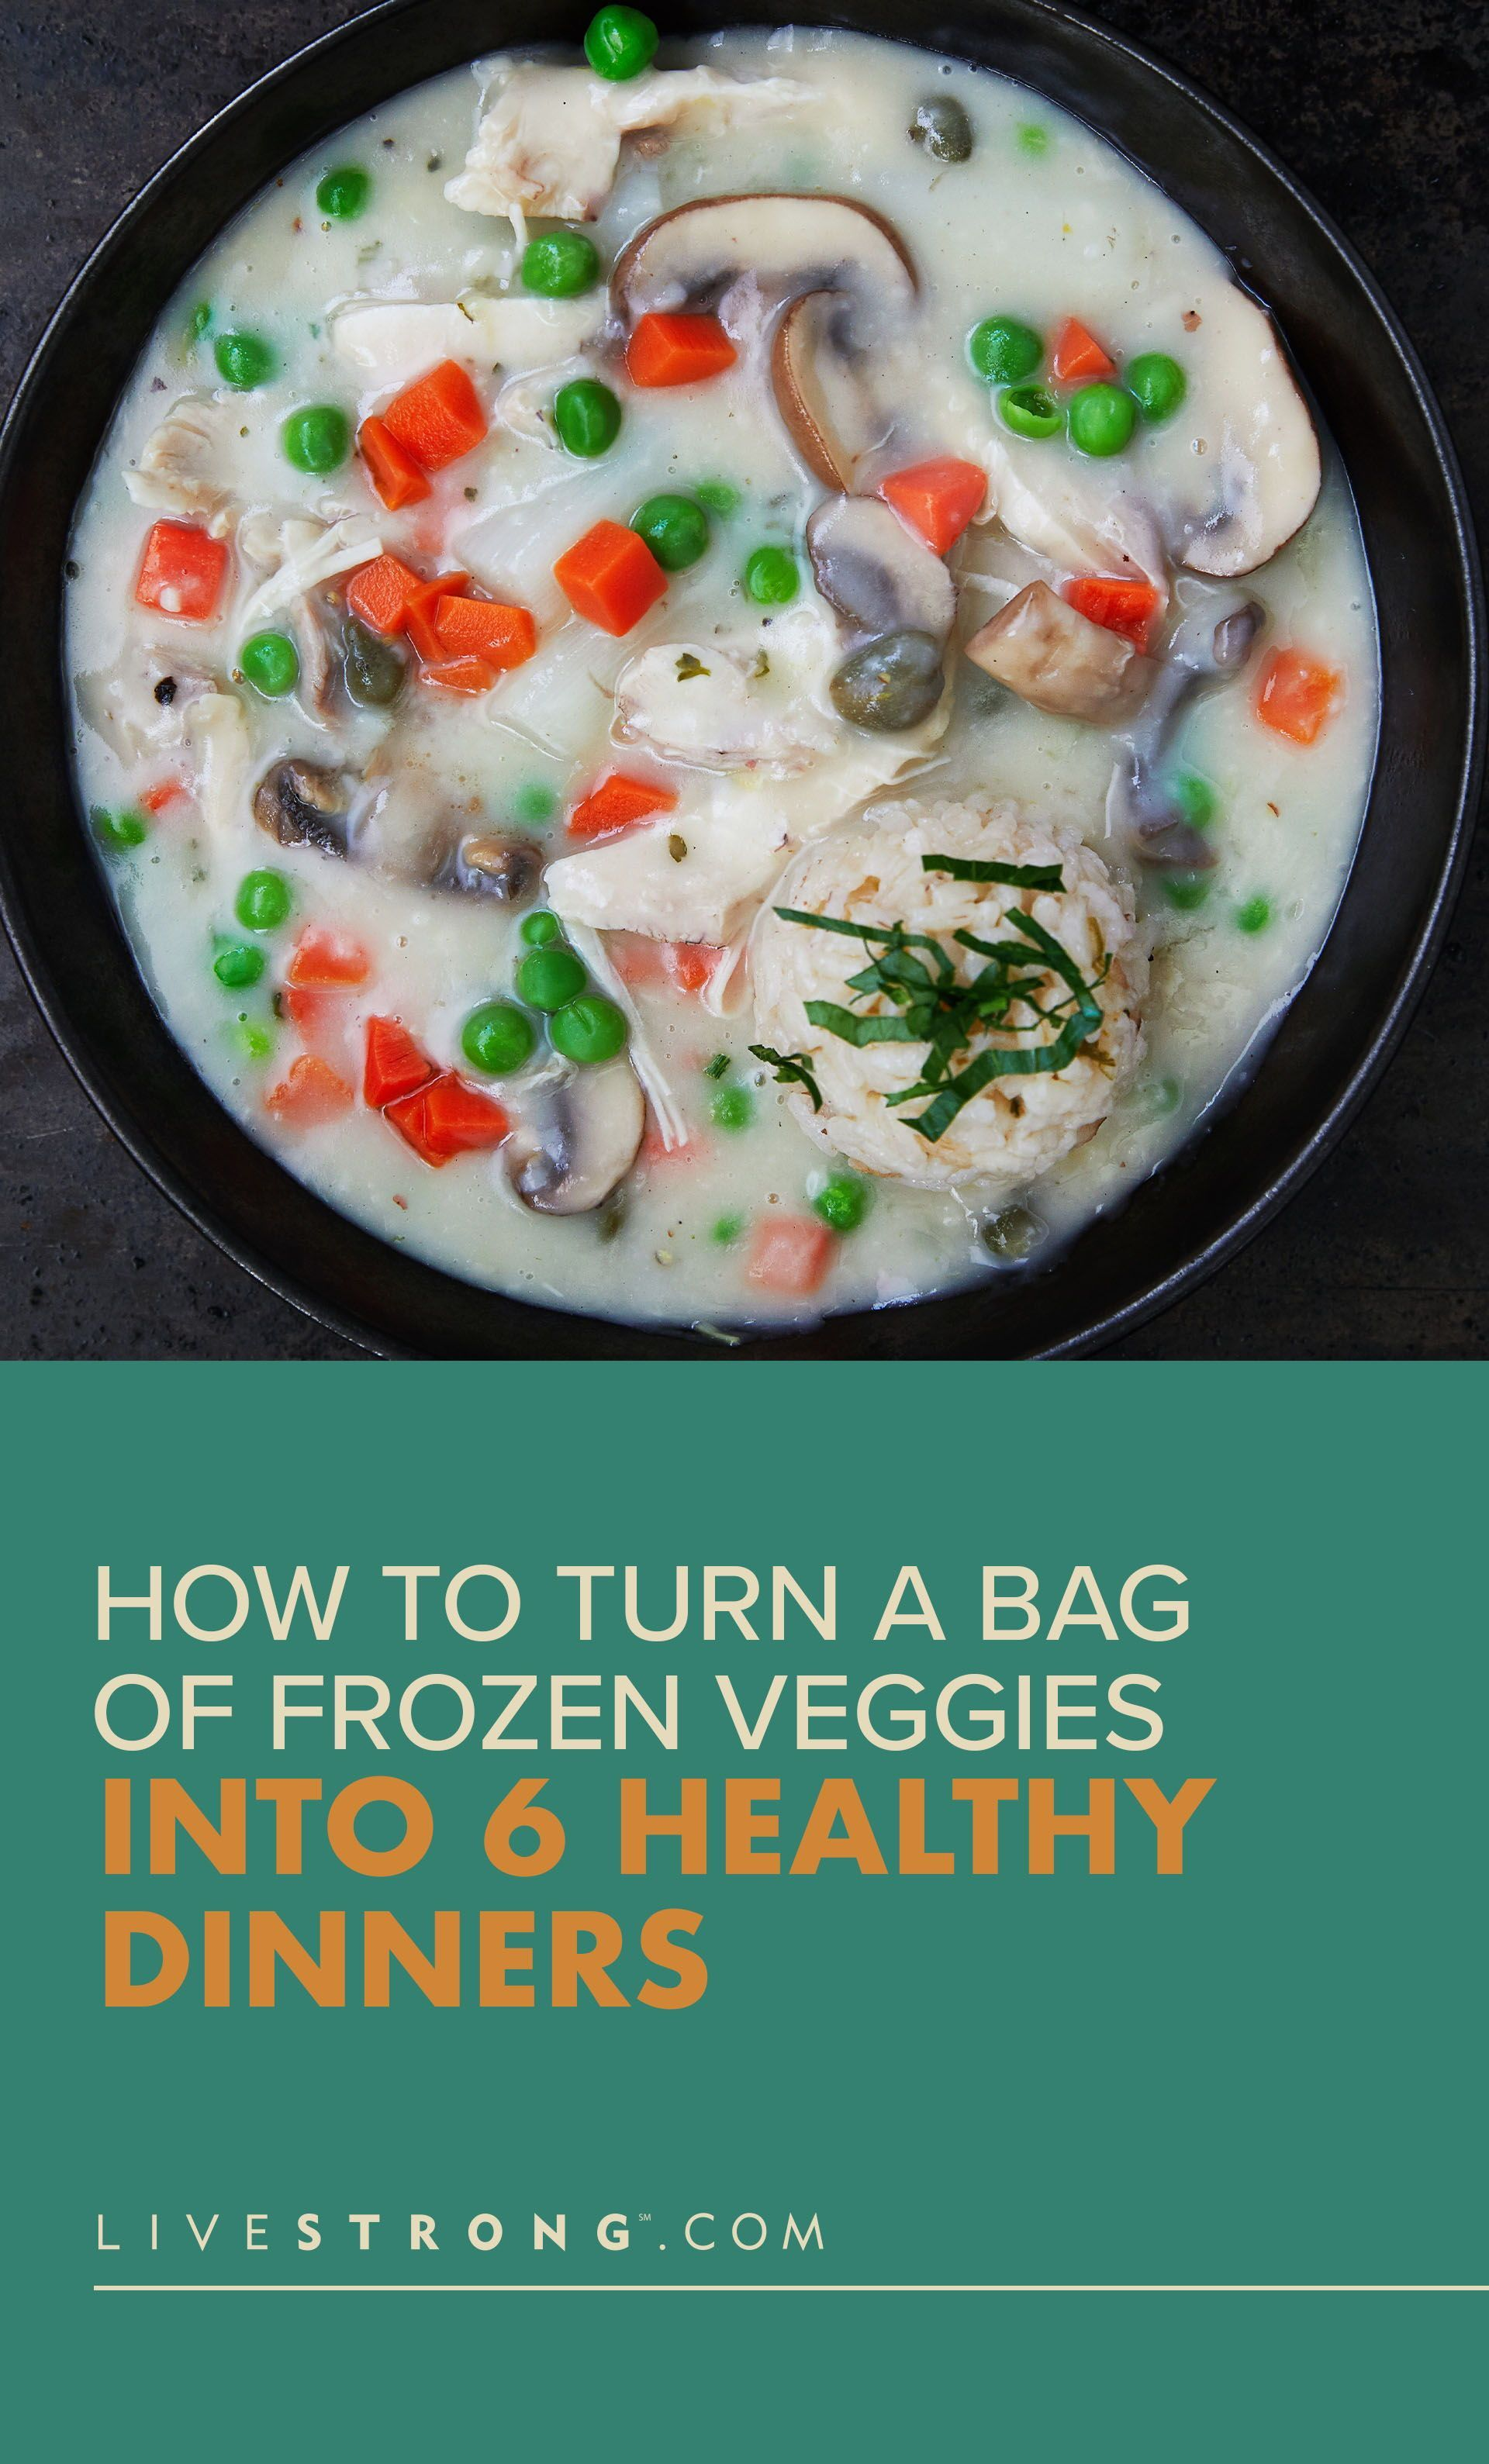 How To Turn A Bag Of Frozen Veggies Into 6 Dinners Under 500 Calories Livestrong Com Frozen Vegetable Recipes Healthy Vegetable Recipes Dinners Under 500 Calories